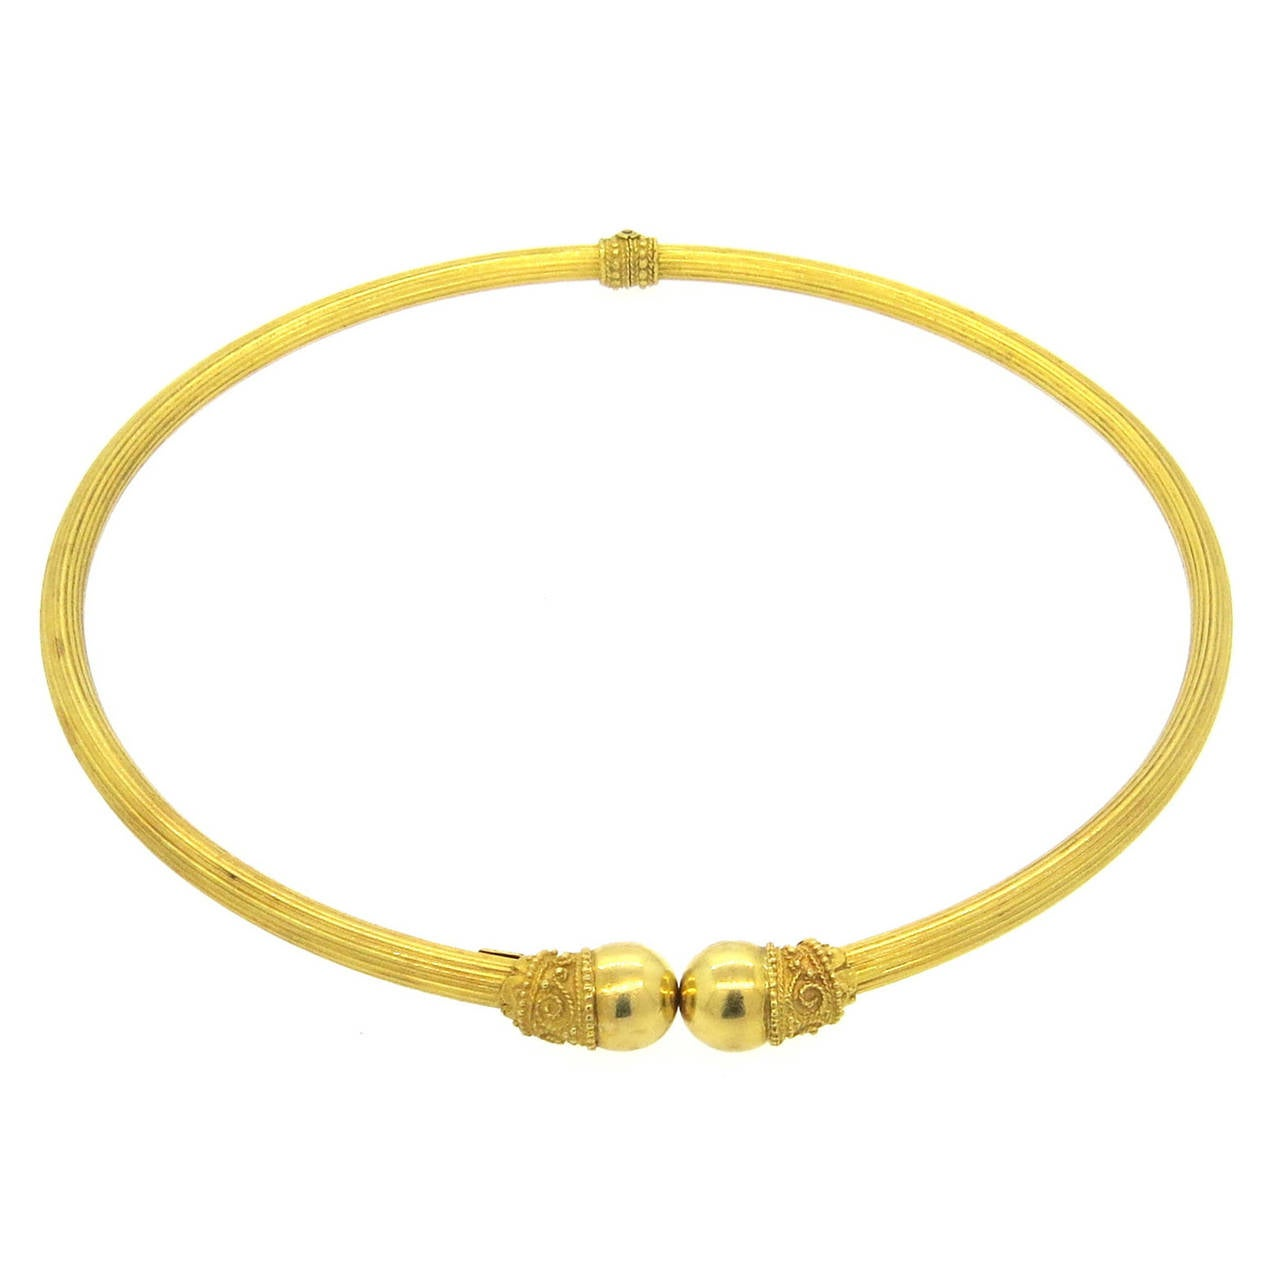 Ilias Lalaounis Gold Collar Necklace